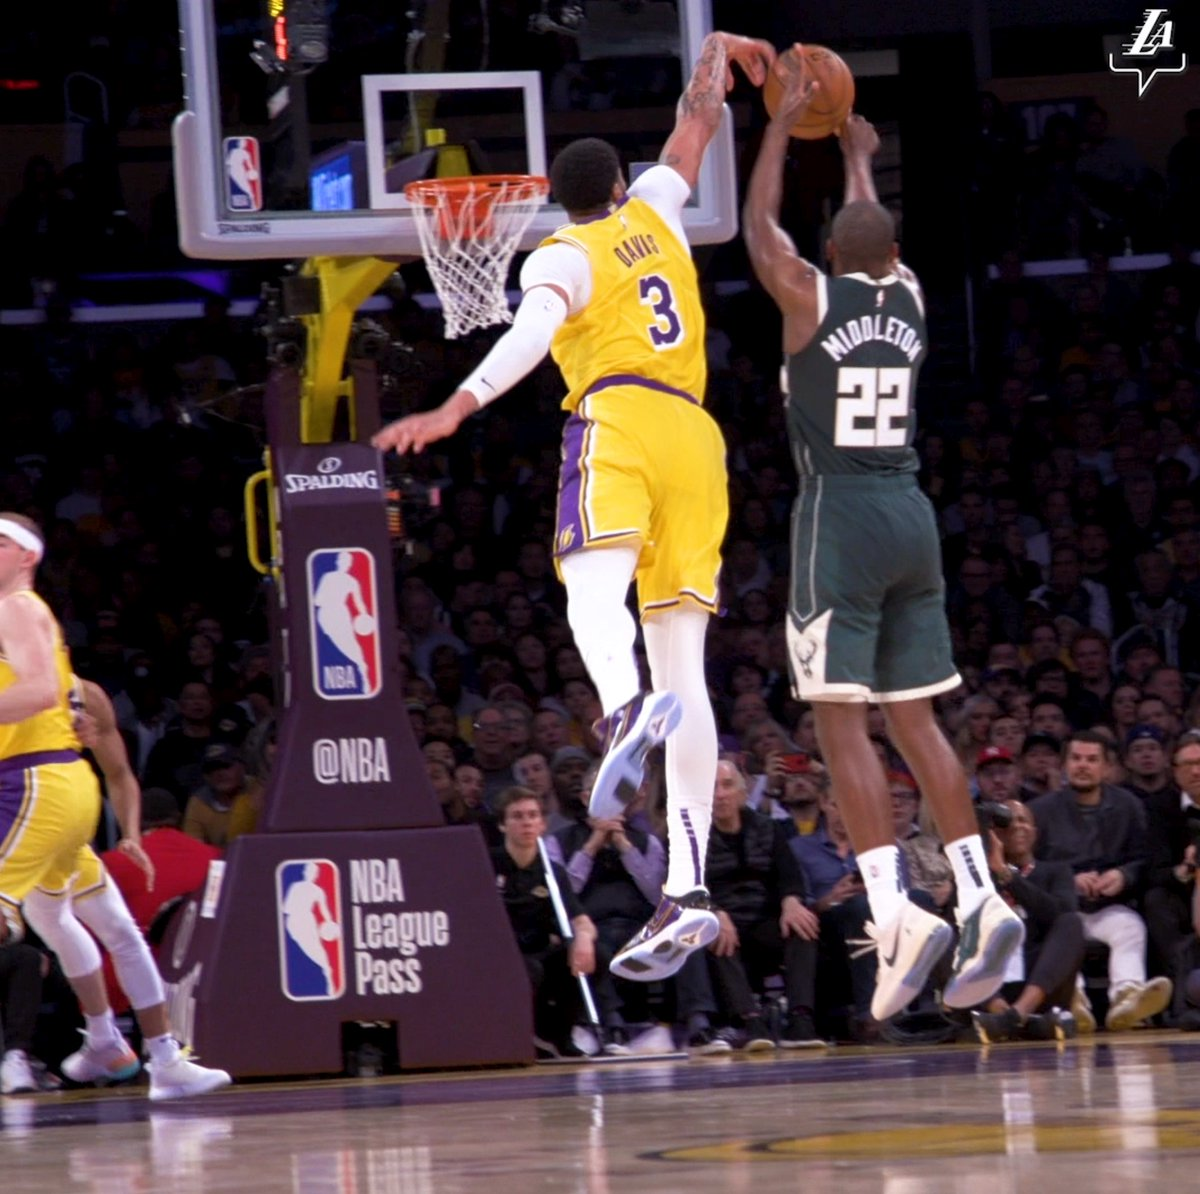 If you're on the court, you're within AD's reach. #BestOfLakersBucks https://t.co/txfVNZkwTW